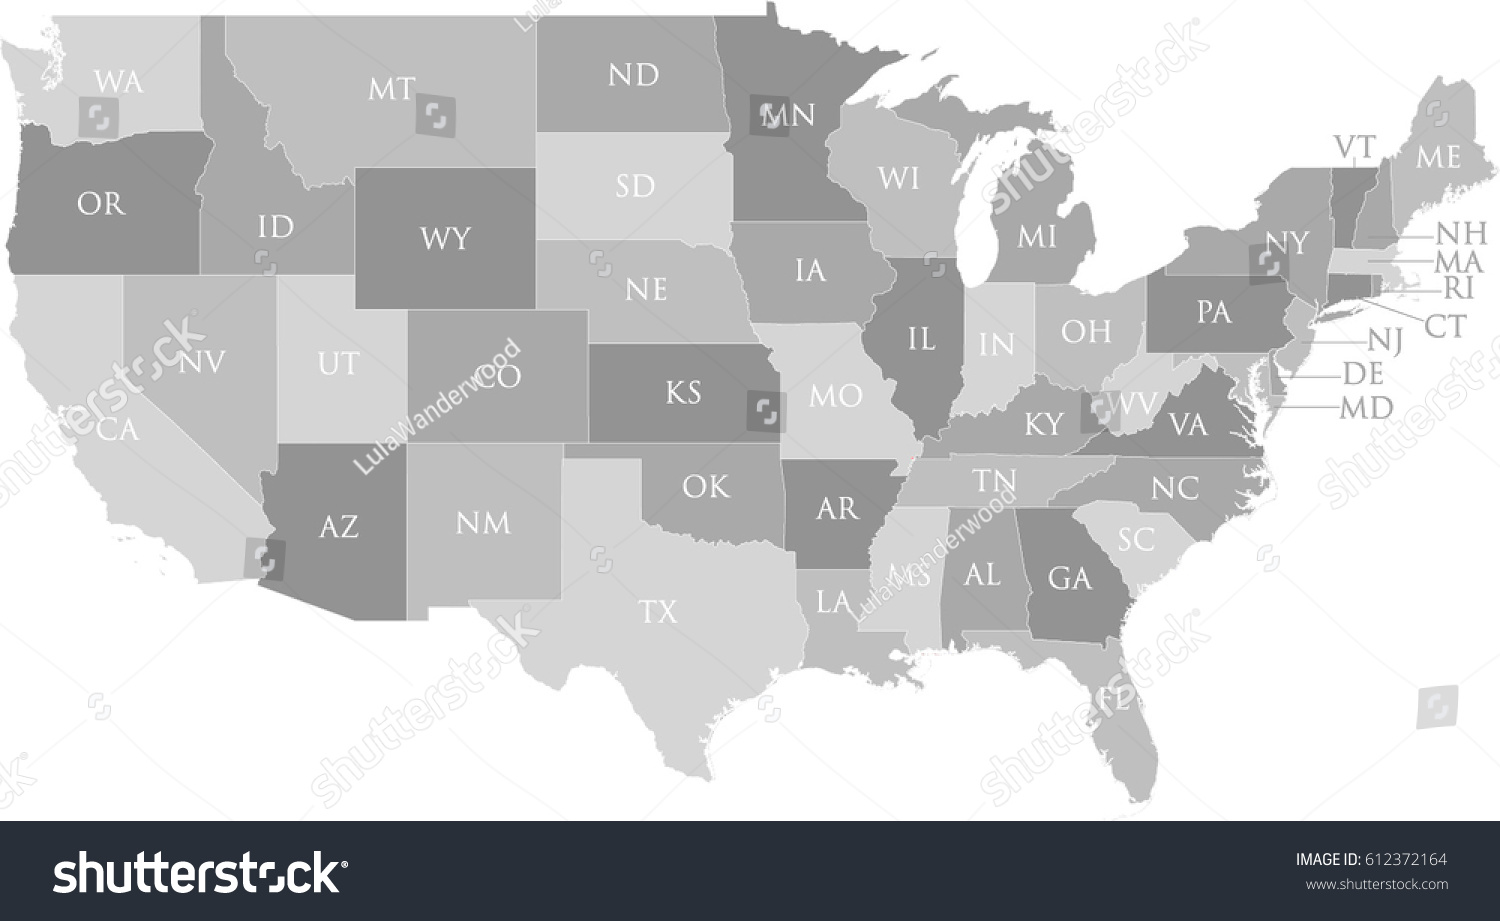 Us Map State Name Postal Abbreviation Stock Vector - United states map with state names and abbreviations